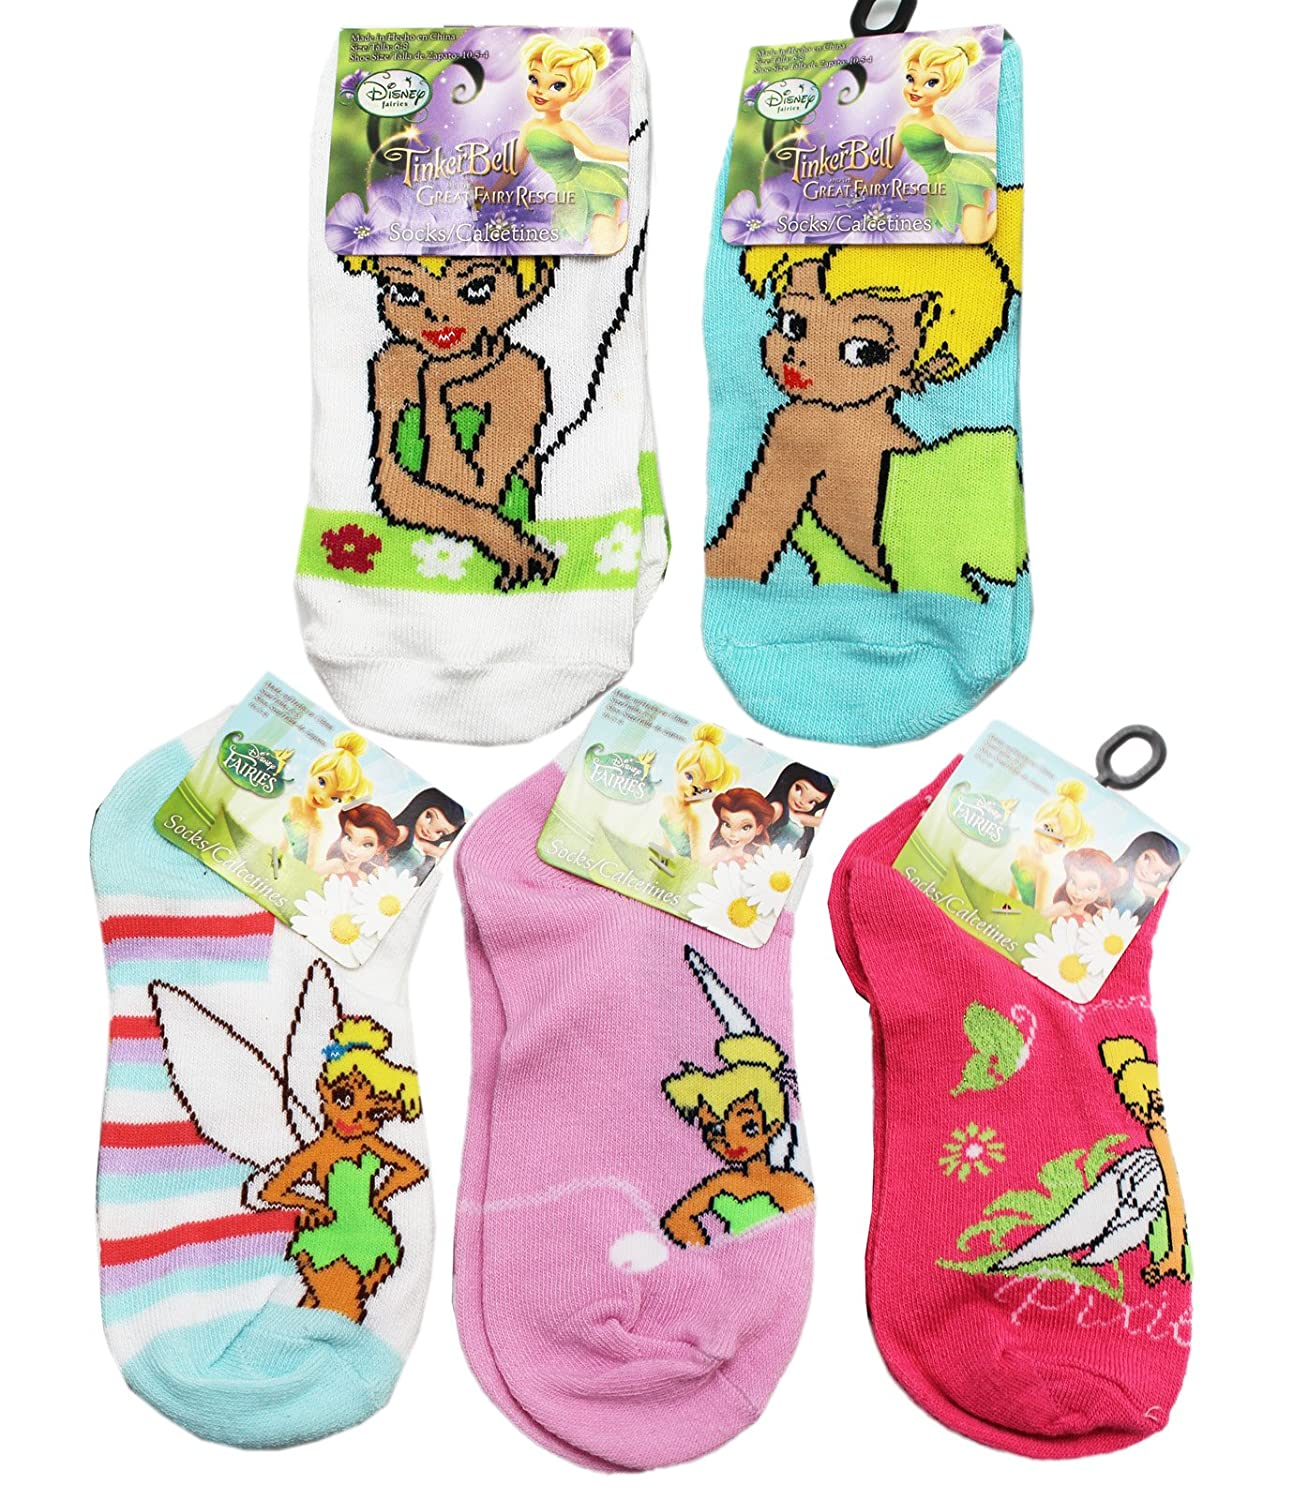 Amazon.com: Disneys Tinker Bell Assorted Color and Design Kids Socks (3 Pairs, Size 6-8): Clothing